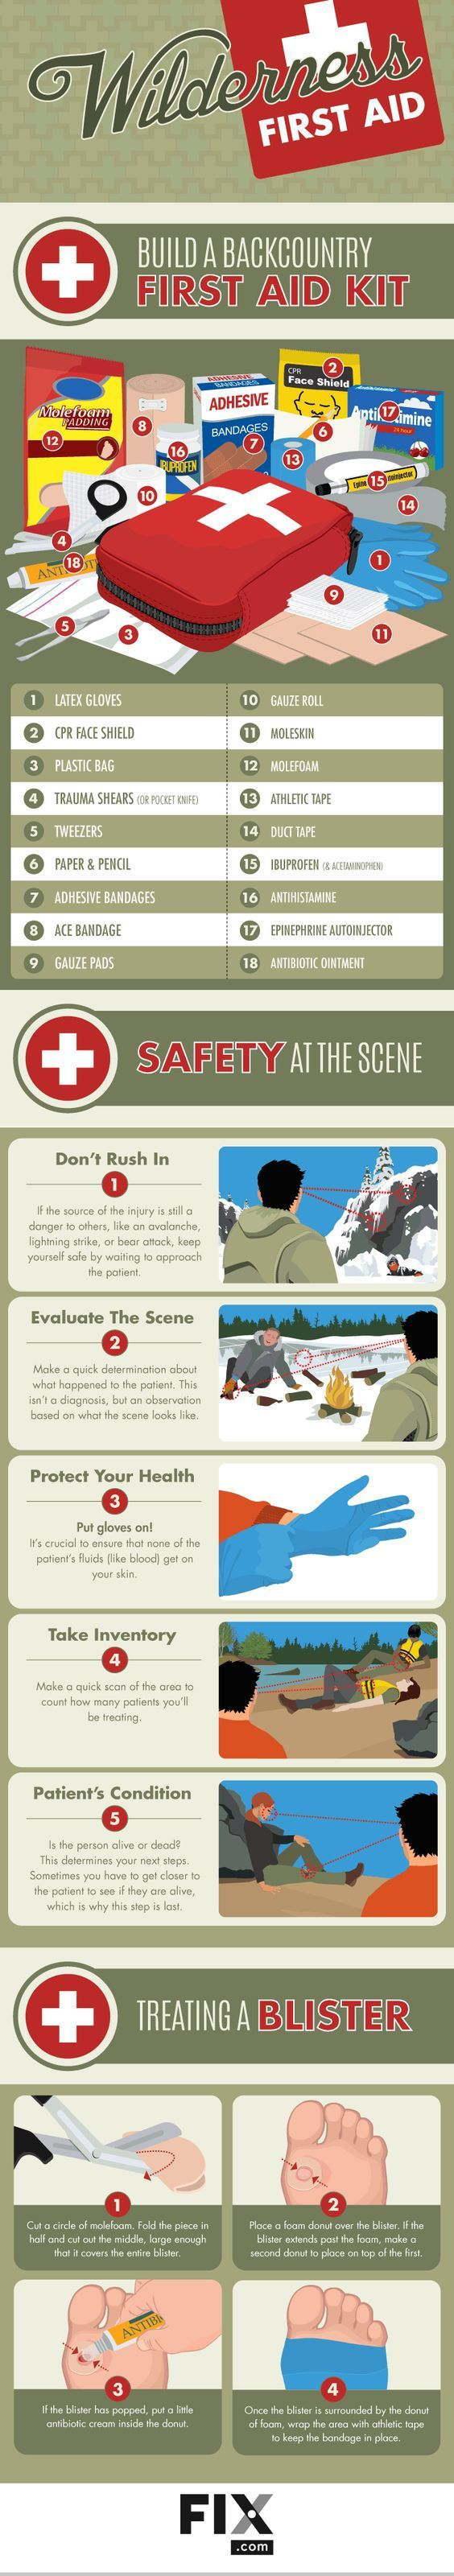 Recommended items for a first aid kit for outdoors. Are you prepared for your next adventure Remember to carry medical tape in your first aid bag, we compare different types of tapes here: http://insidefirstaid.com/personal/first-aid-kit/medical-tape-buy-the-right-kind #outdoors #camping #wilderness #medical #tape #first #aid #kit